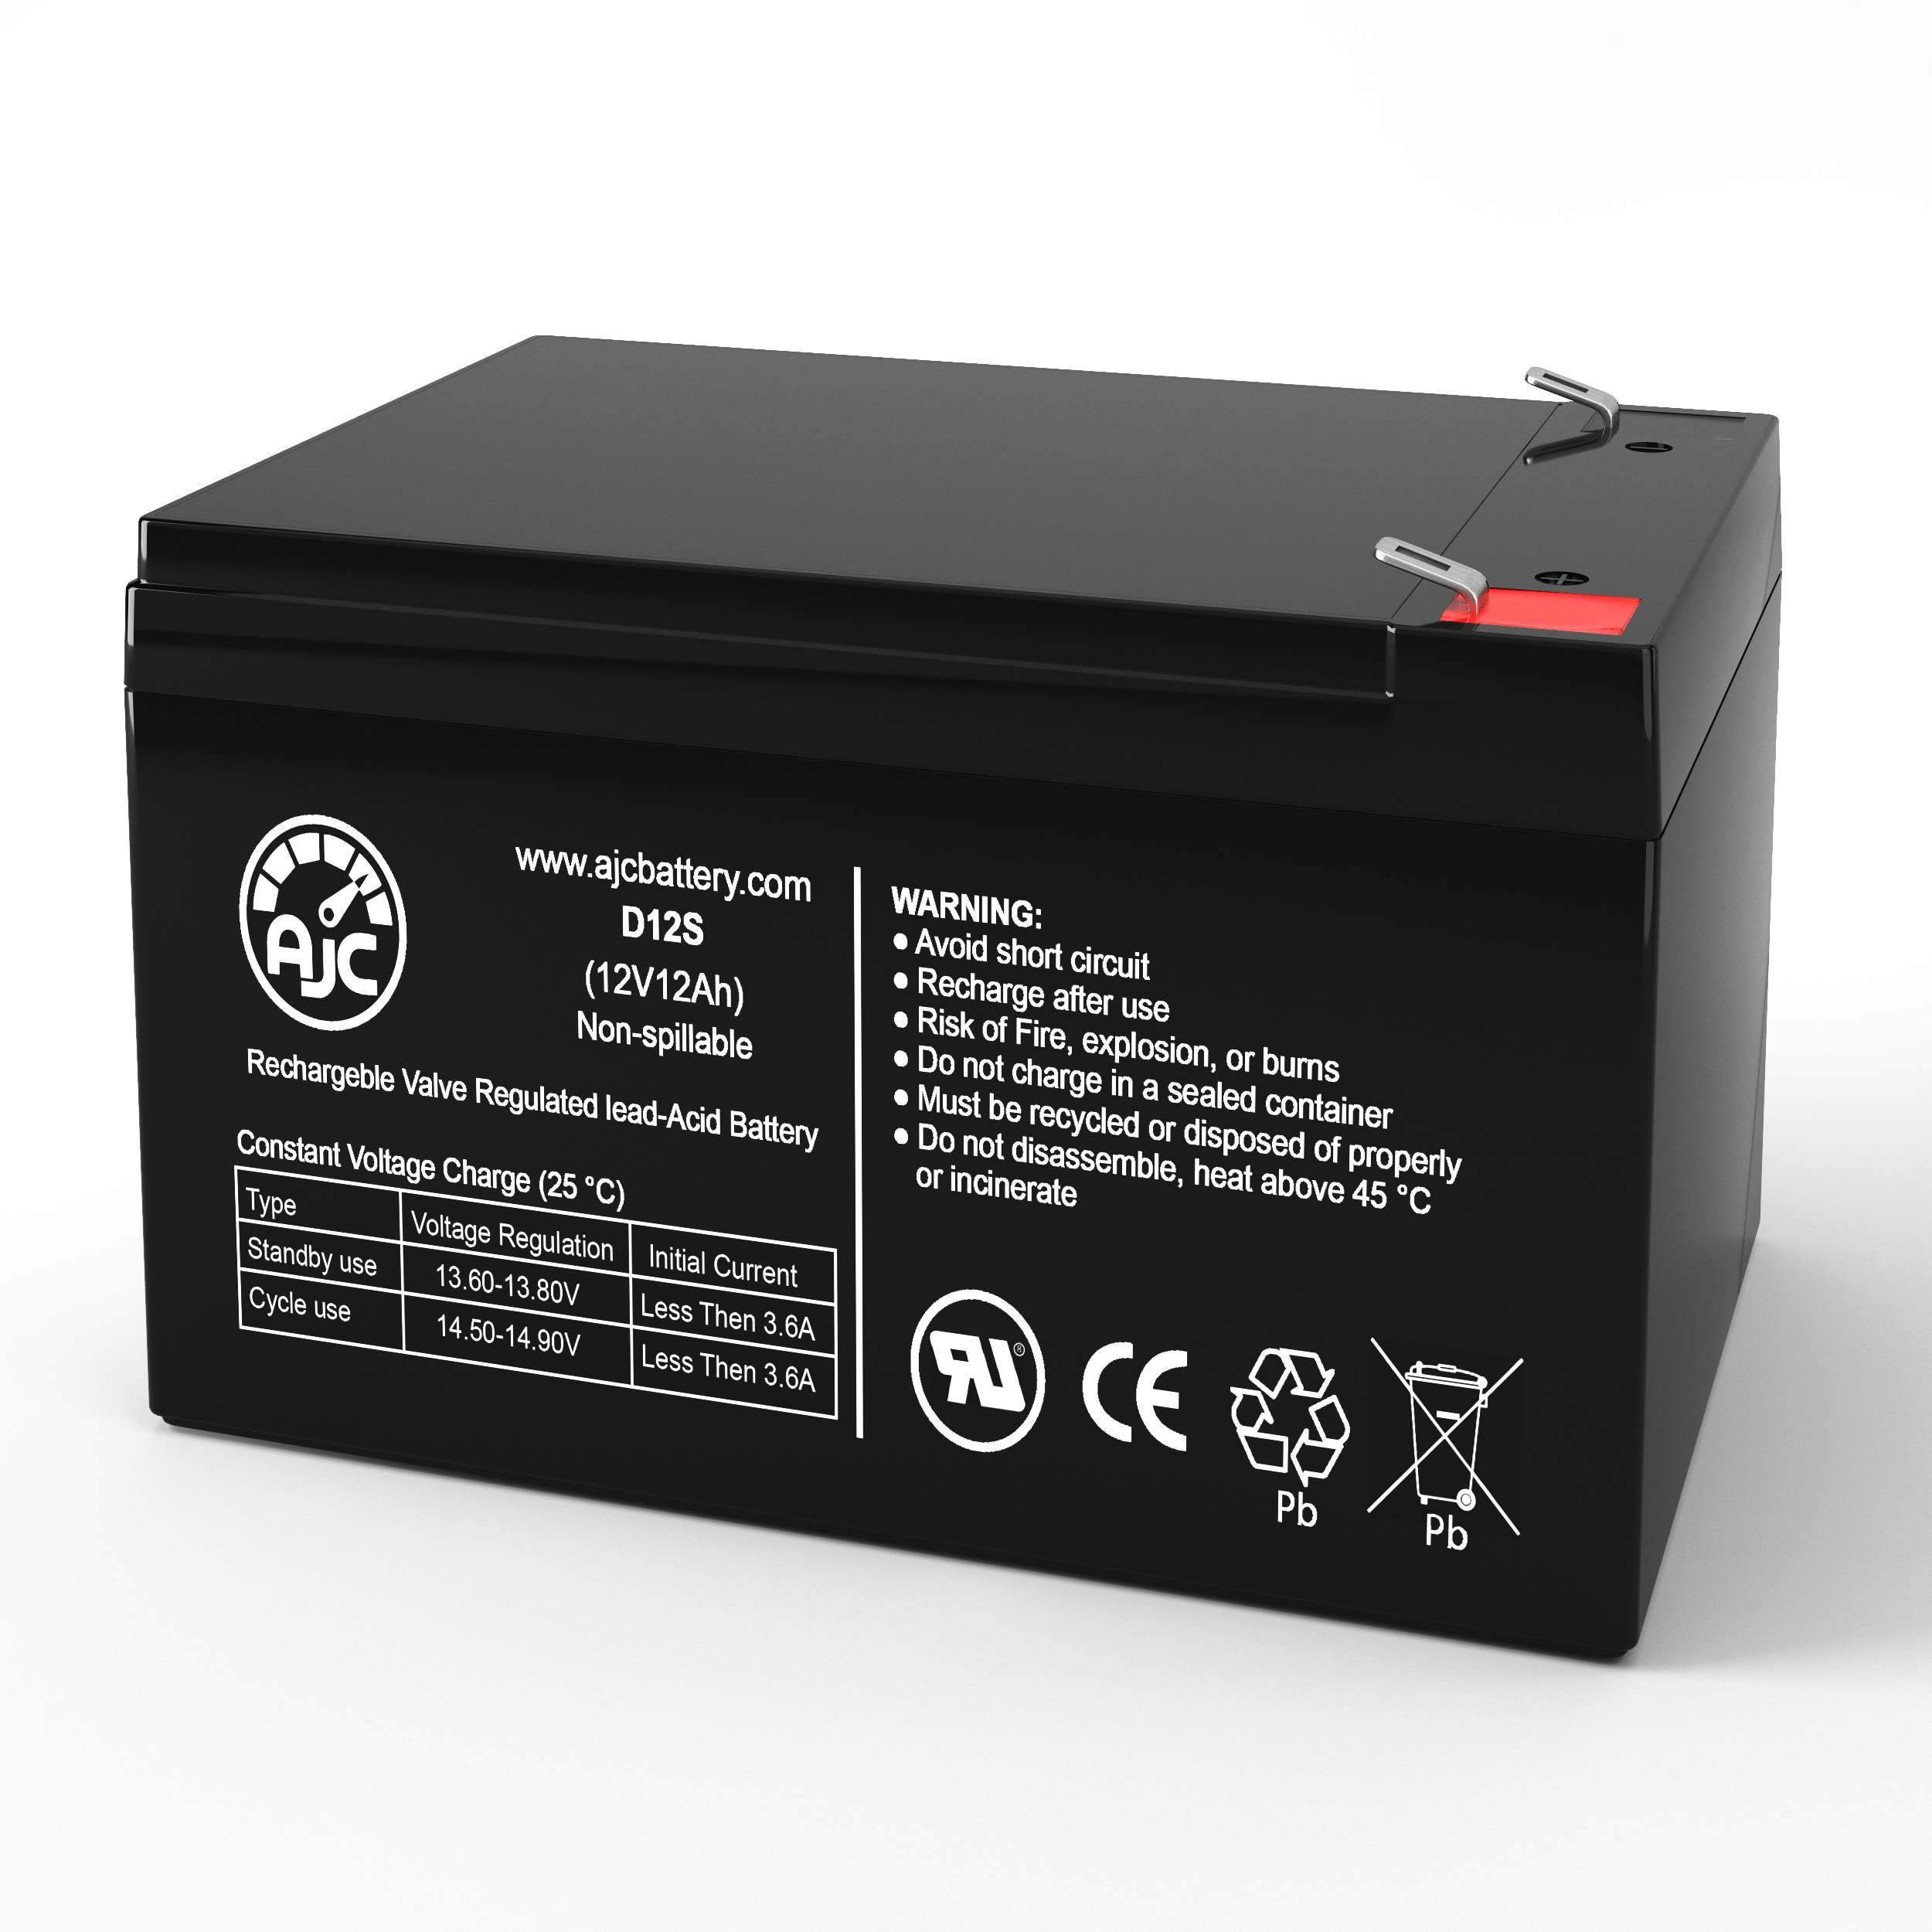 This is an AJC Brand Replacement MK ES12-12 12V 12Ah UPS Battery